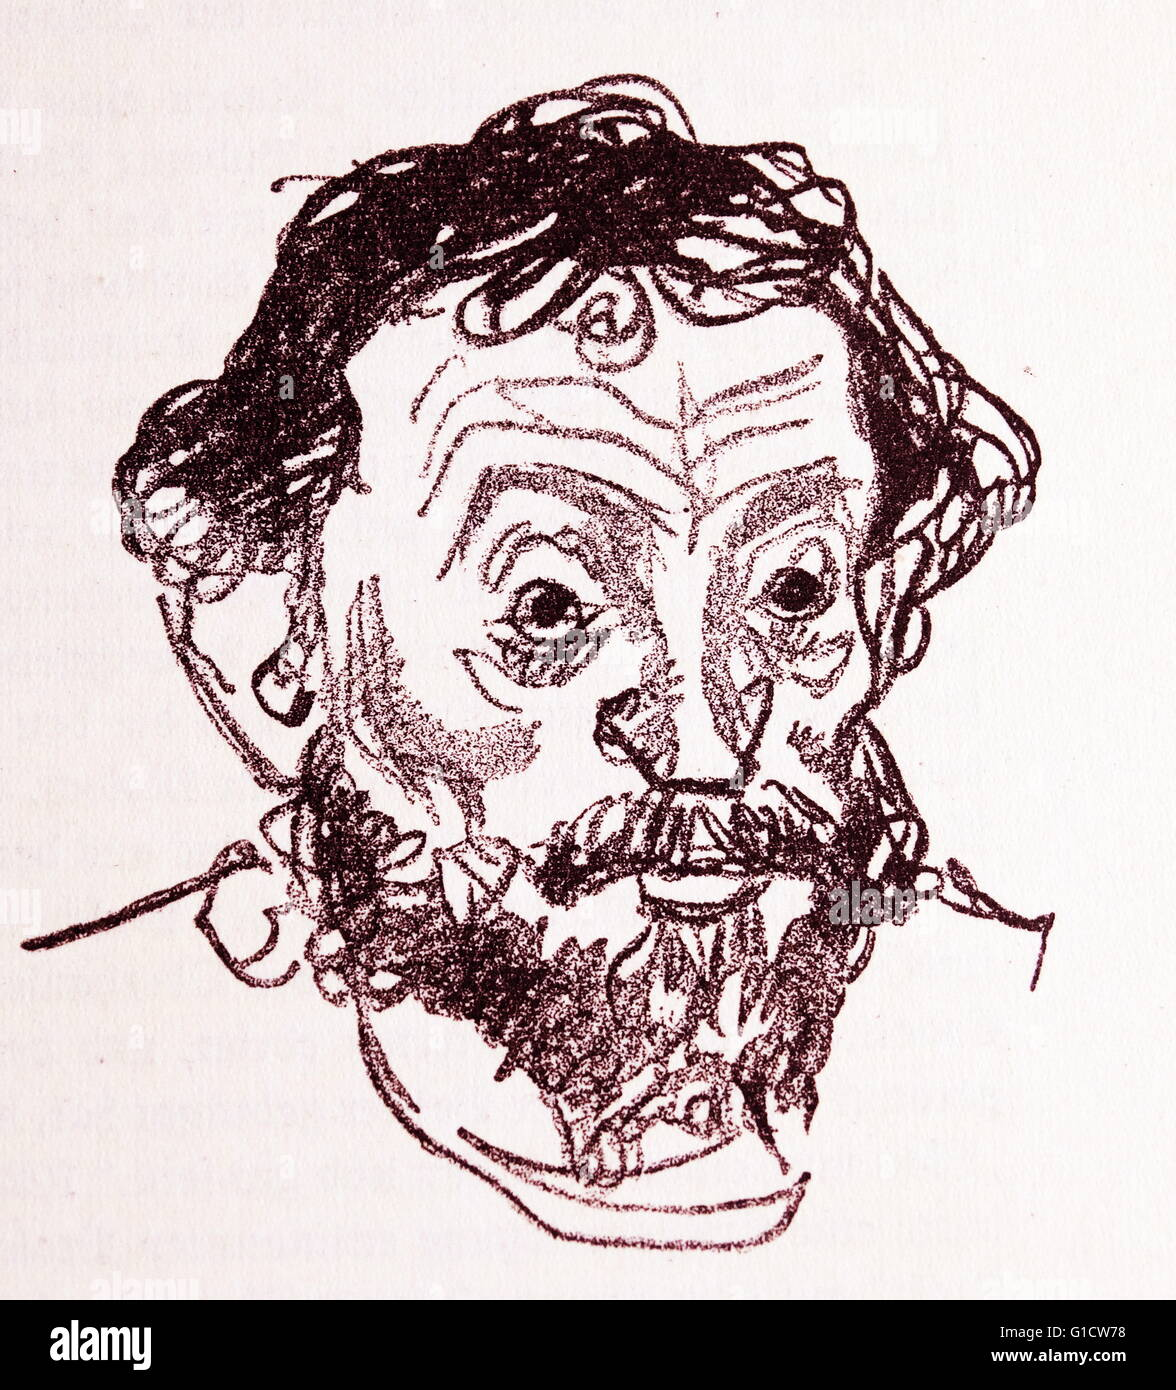 Charcoal portrait of Ernst Barlach (1870-1938) a German expressionist sculptor, printmaker and writer. Dated 20th - Stock Image